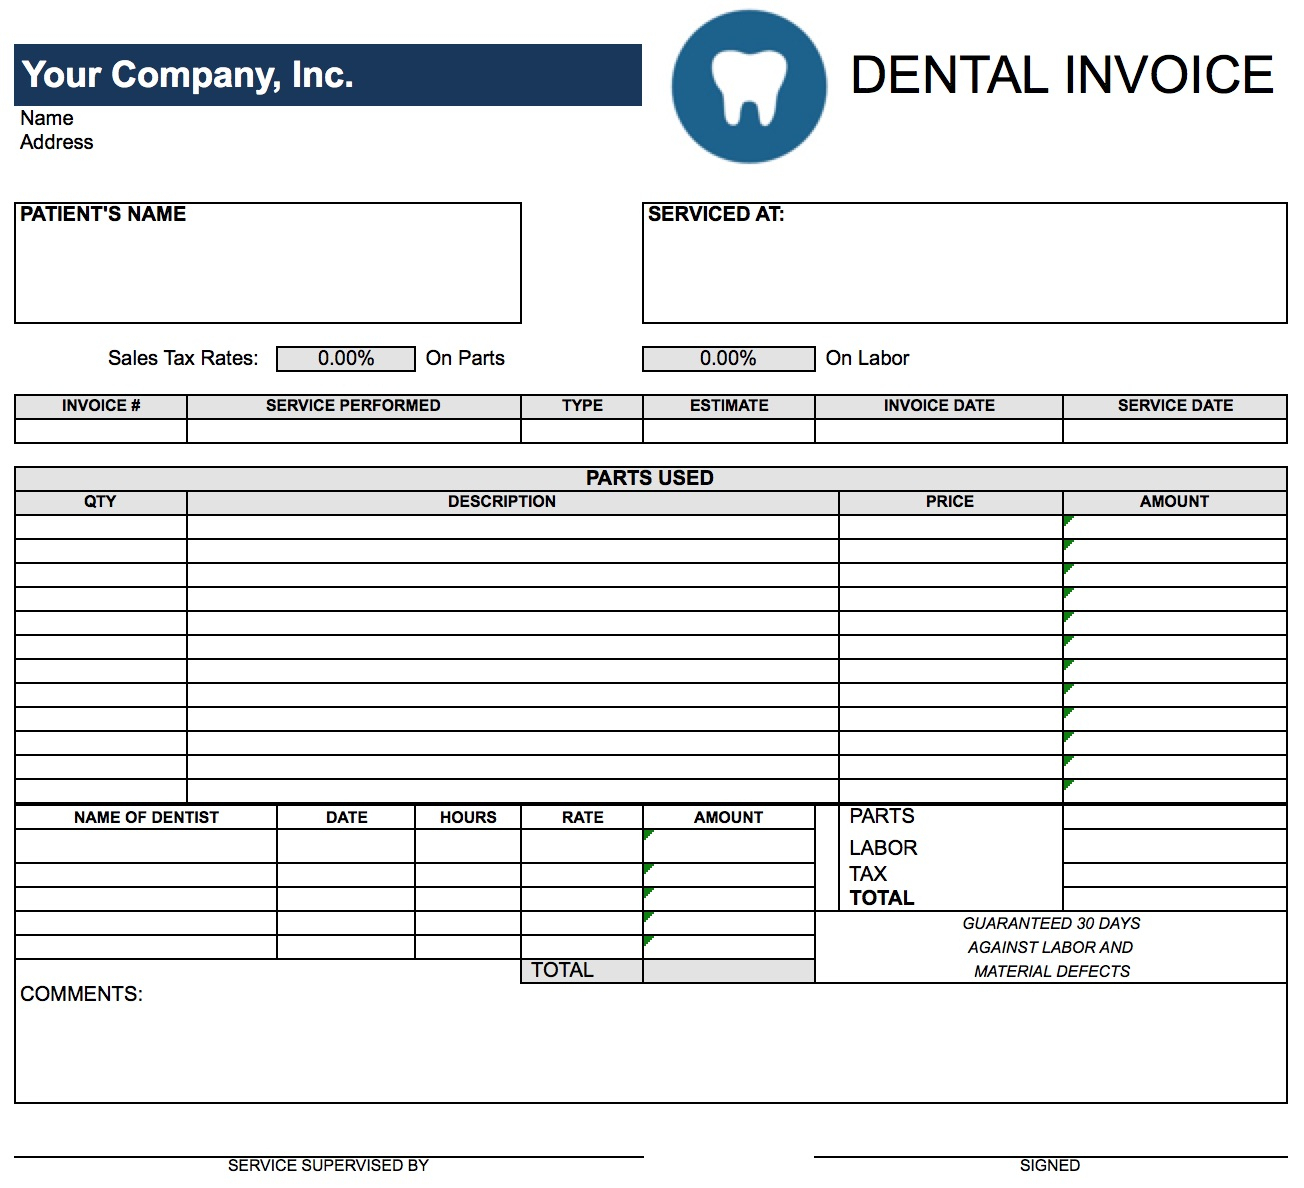 Dental Office Expense Spreadsheet Intended For Dental Invoice Sample Lab Implant Clinic Laboratory Spreadsheet